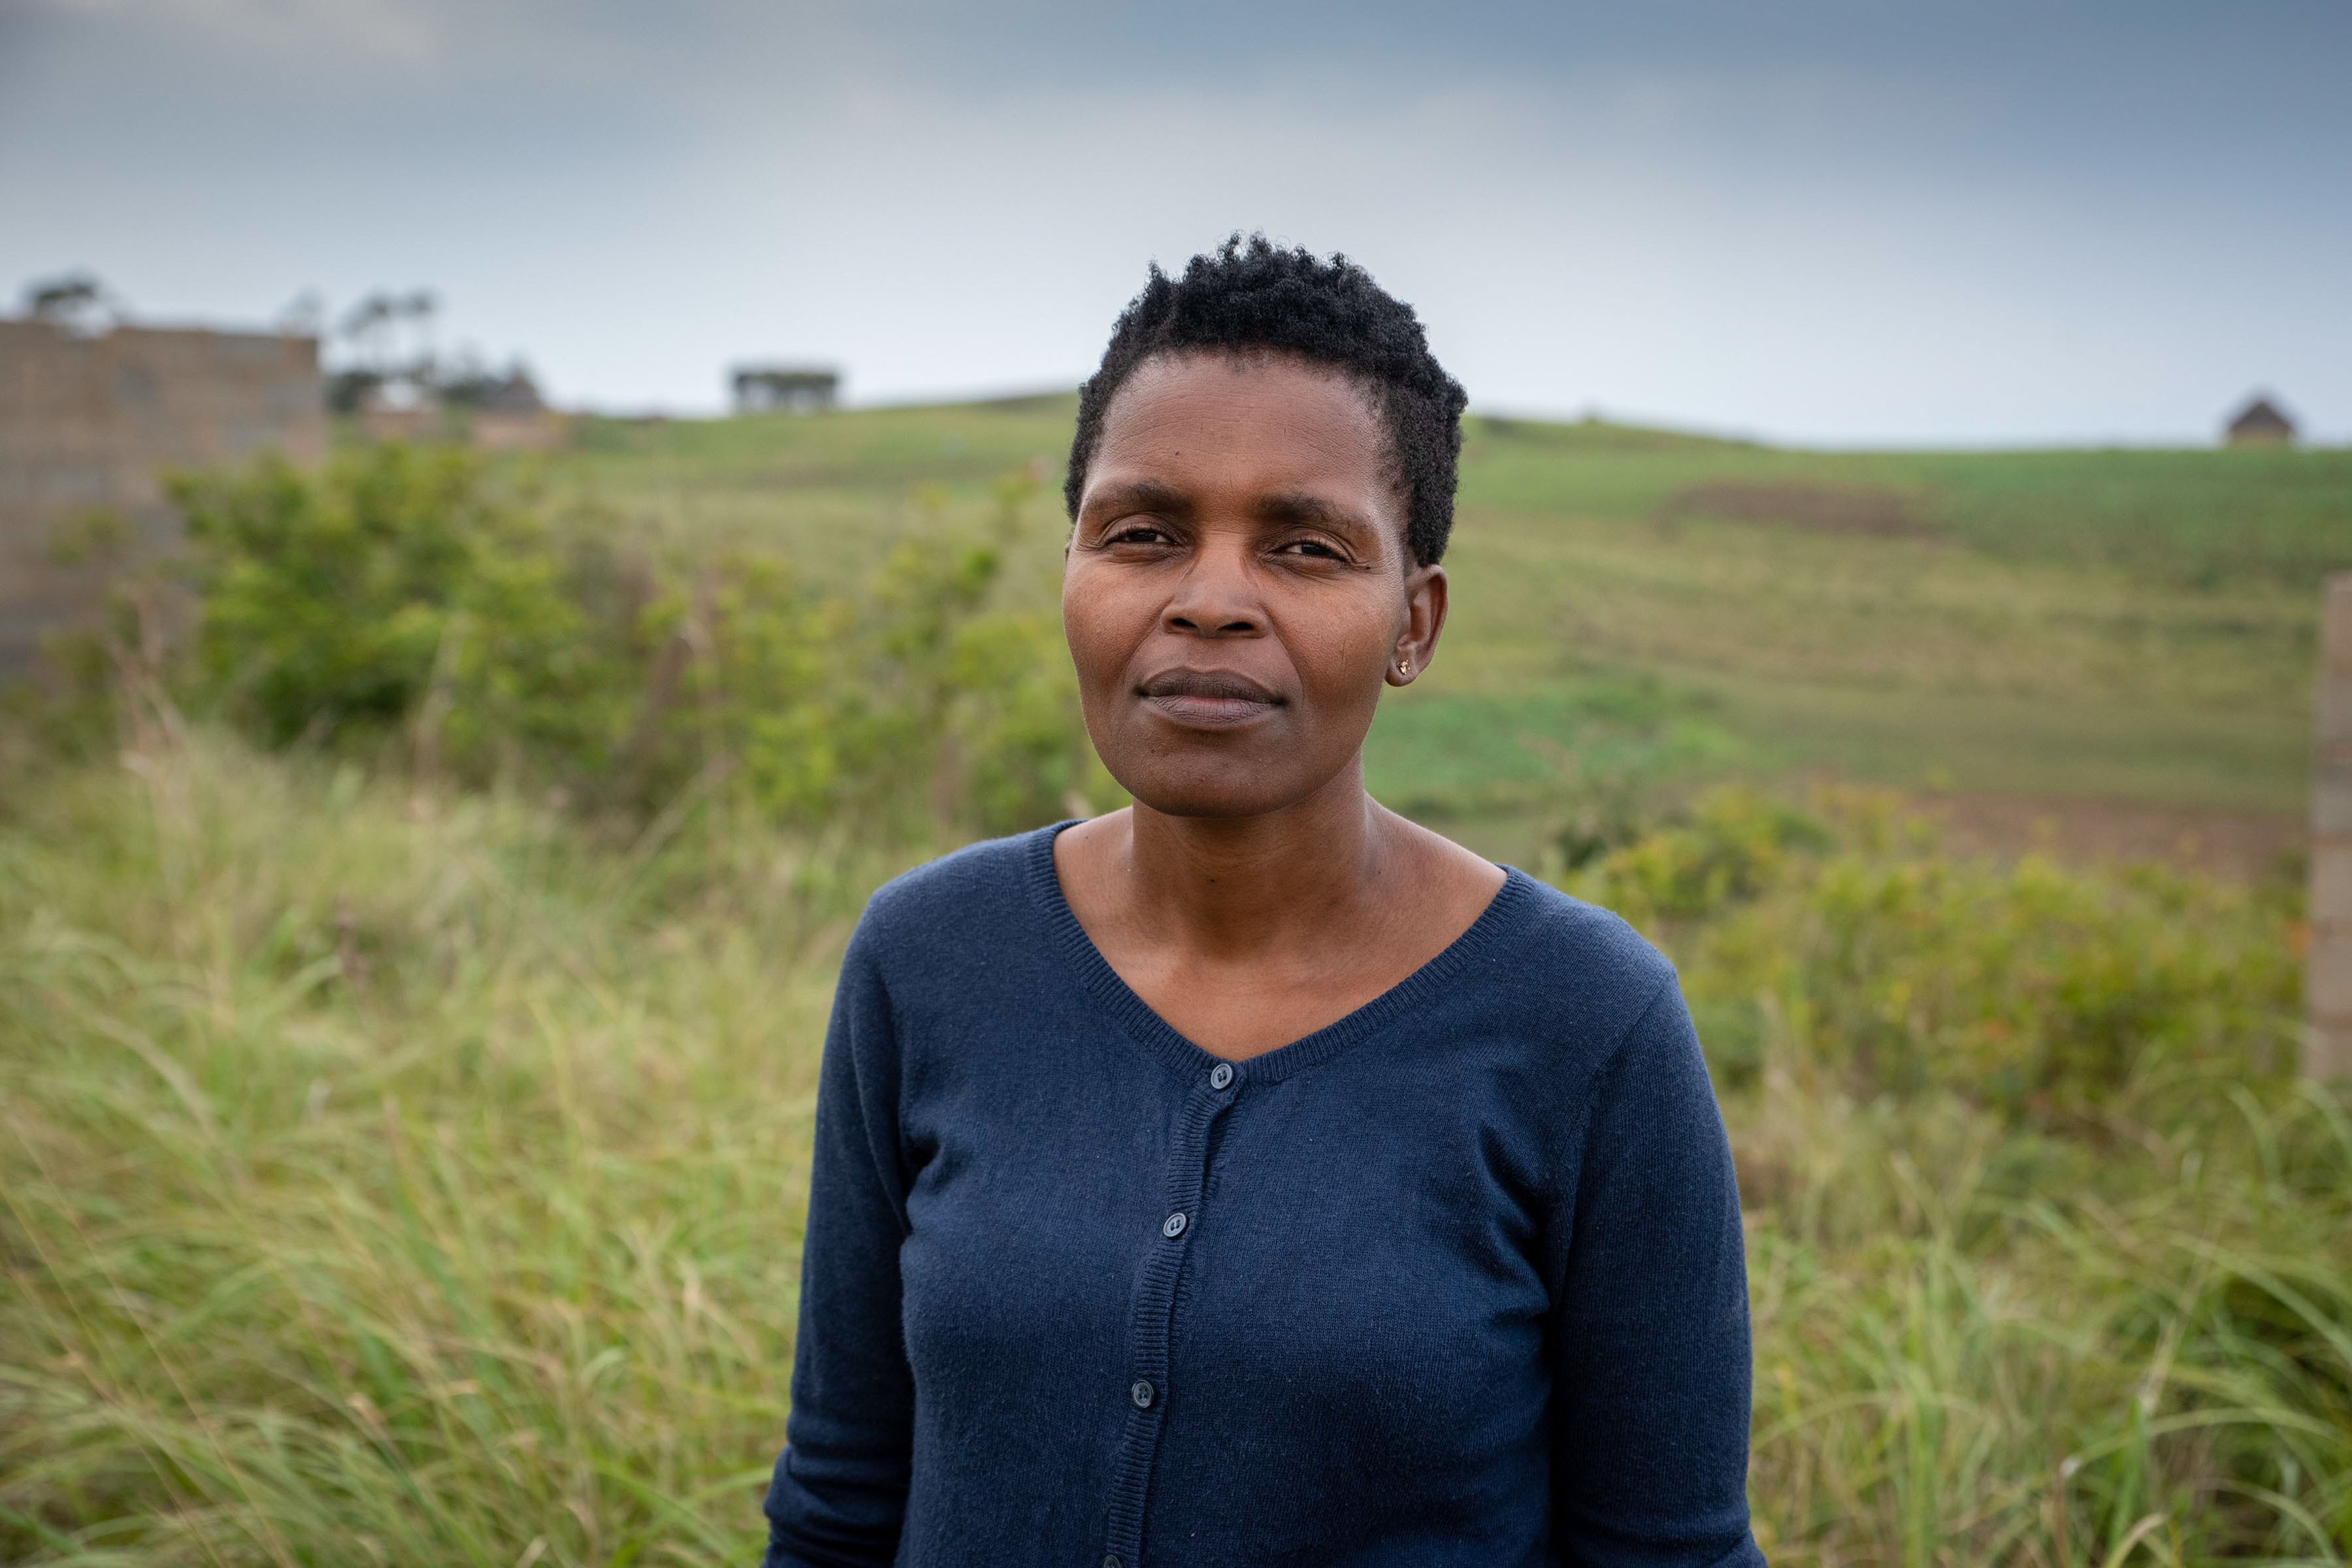 20 November 2018: Nonhle Mbuthuma is one of the three founders of the Amadiba Crisis Committee, which formed to fight off attempts on the land.